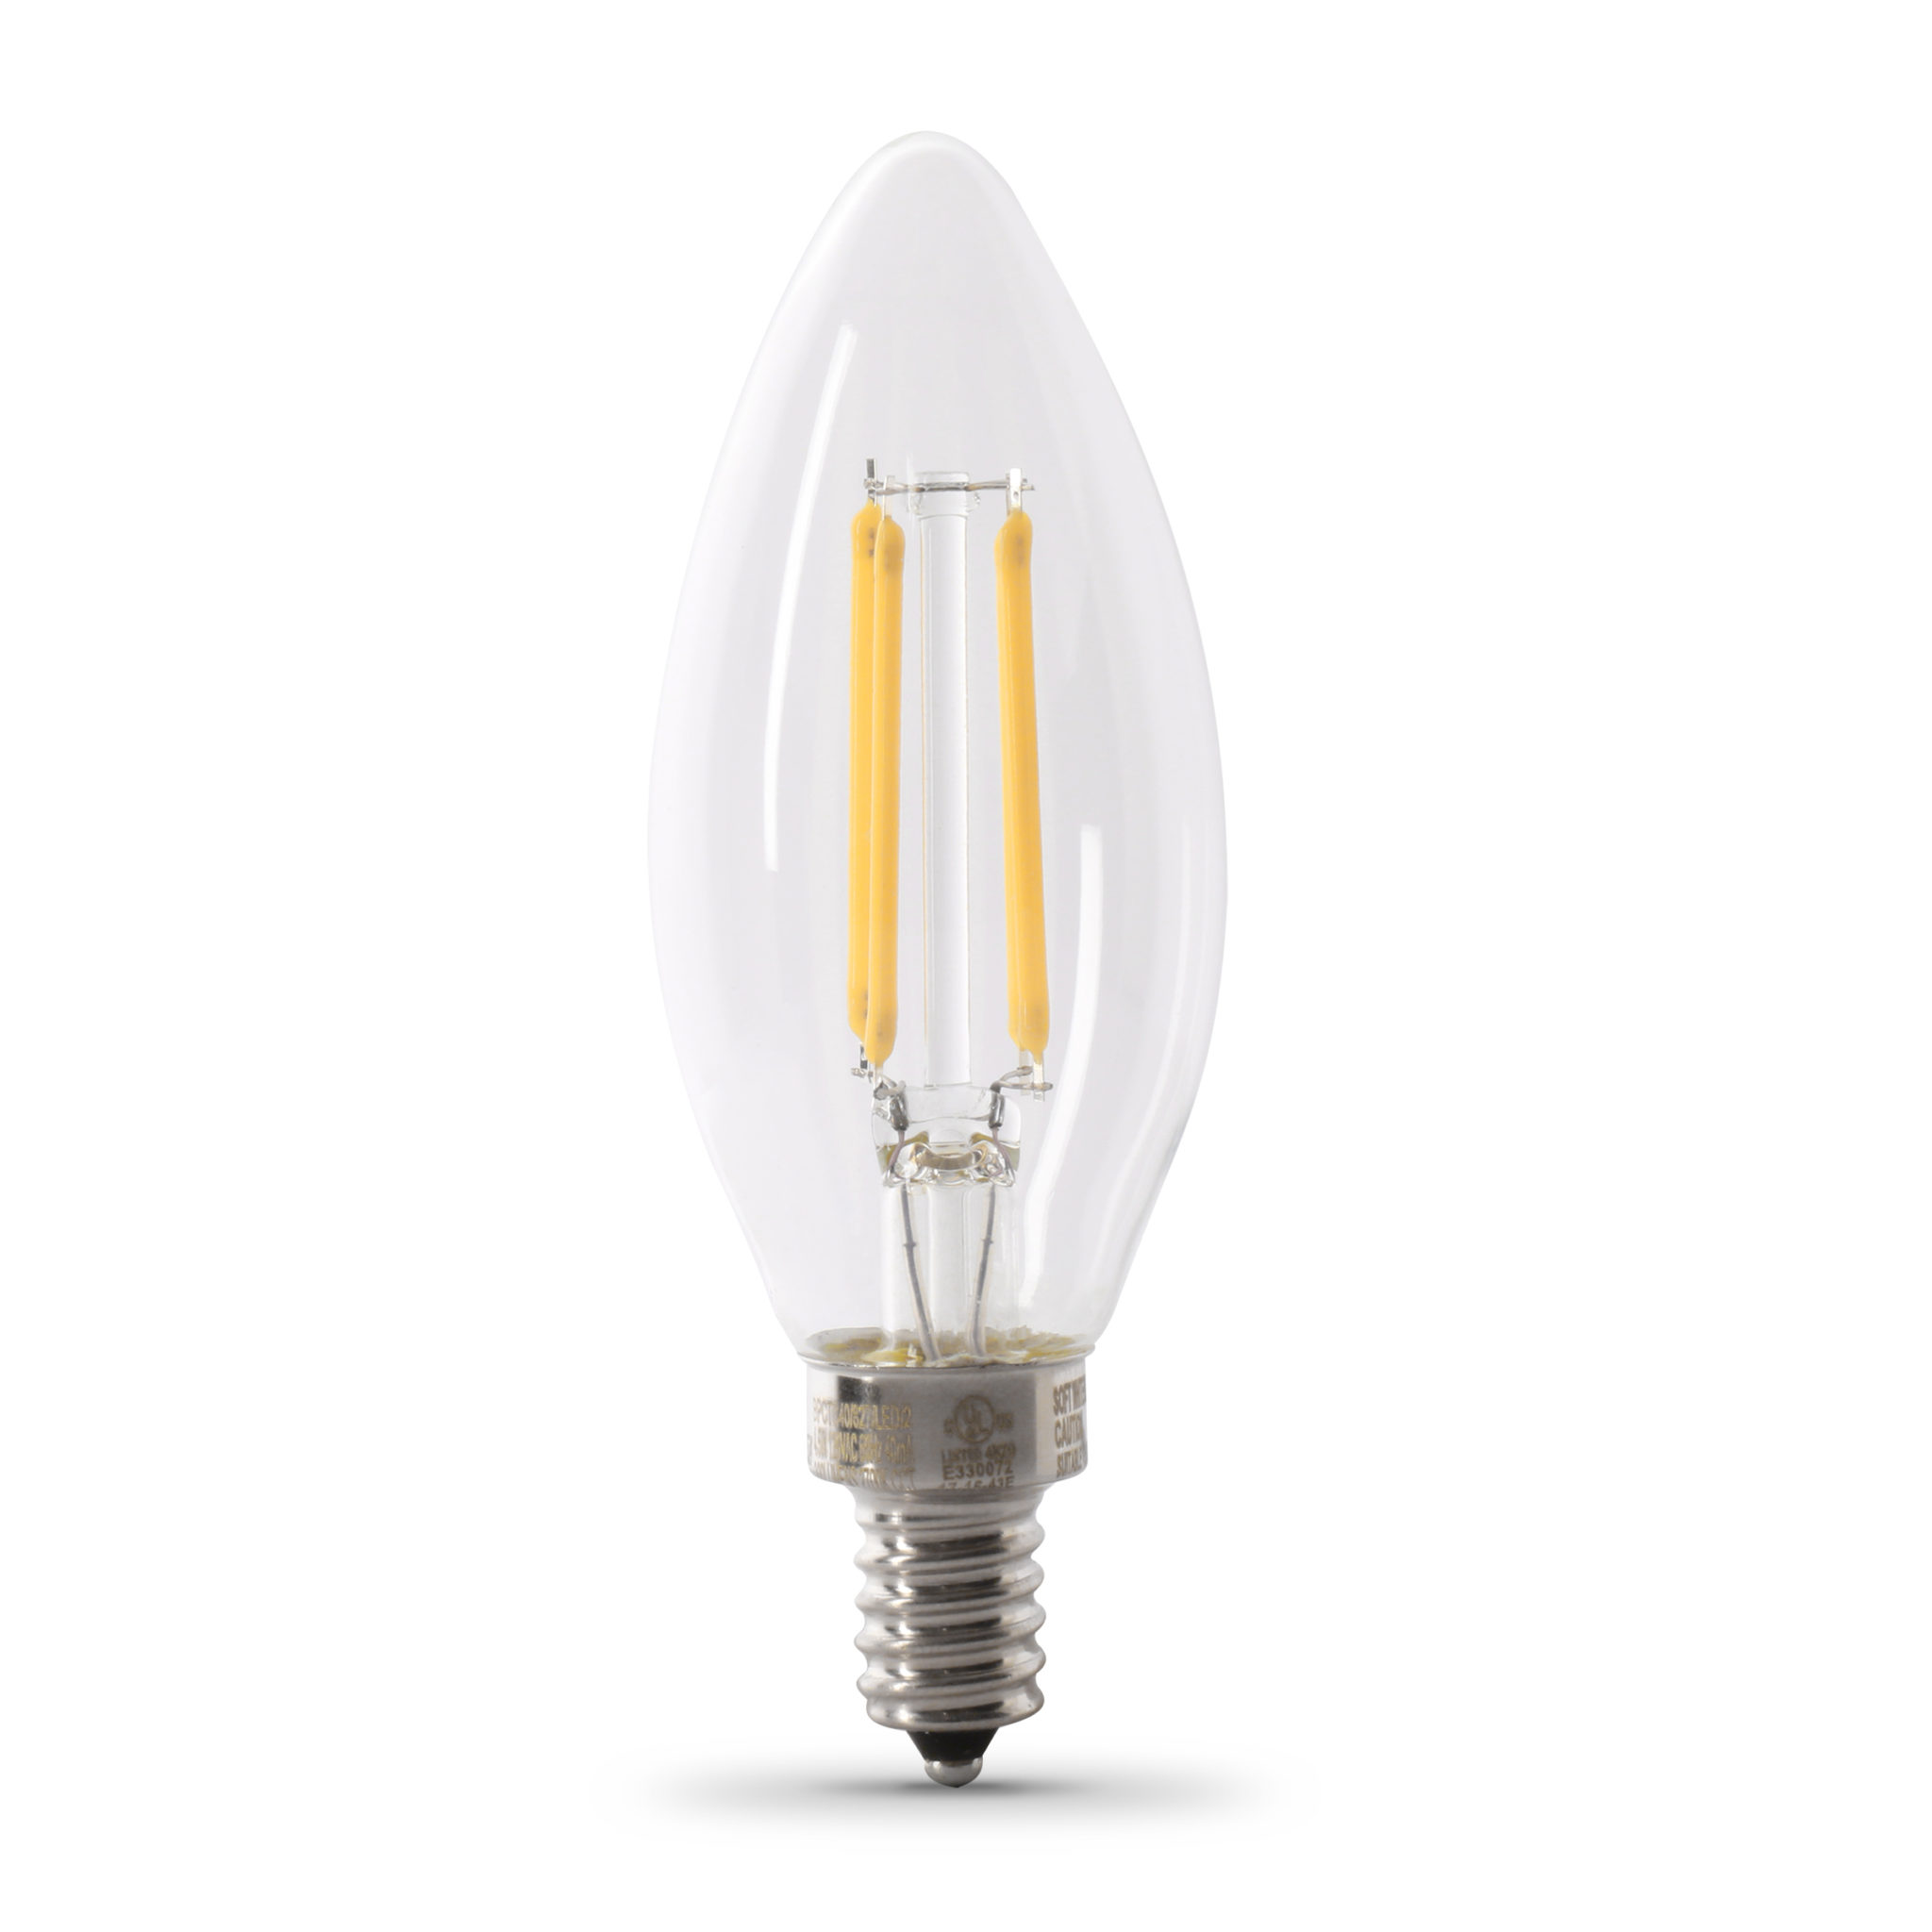 60 W Equivalent Daylight B10 Dimmable Enhance Glass Filament LED Light Bulb (6-Pack)